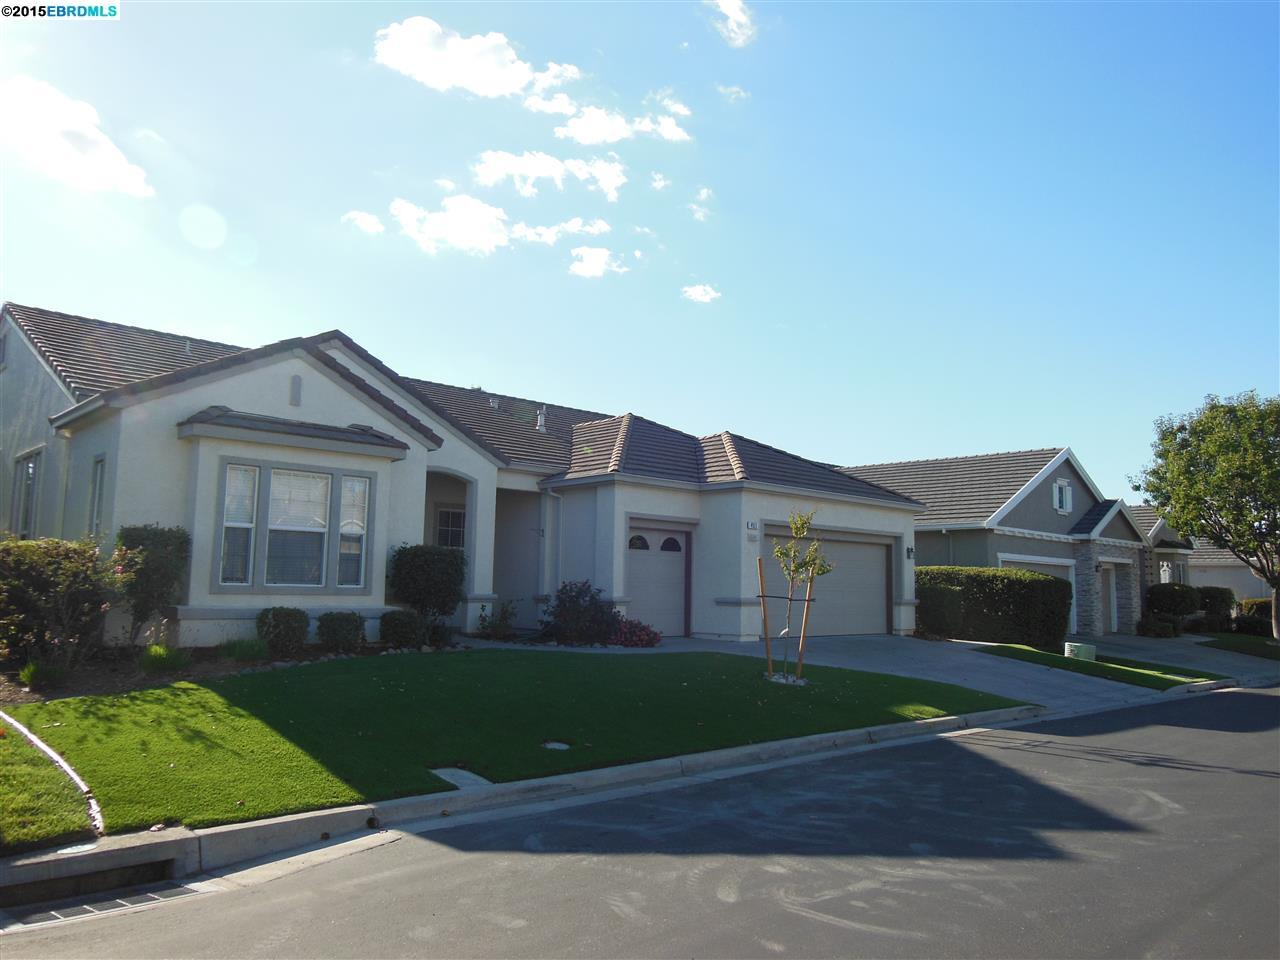 Single Family Home for sale in 451 TAYBERRY LN, BRENTWOOD, California ,94513